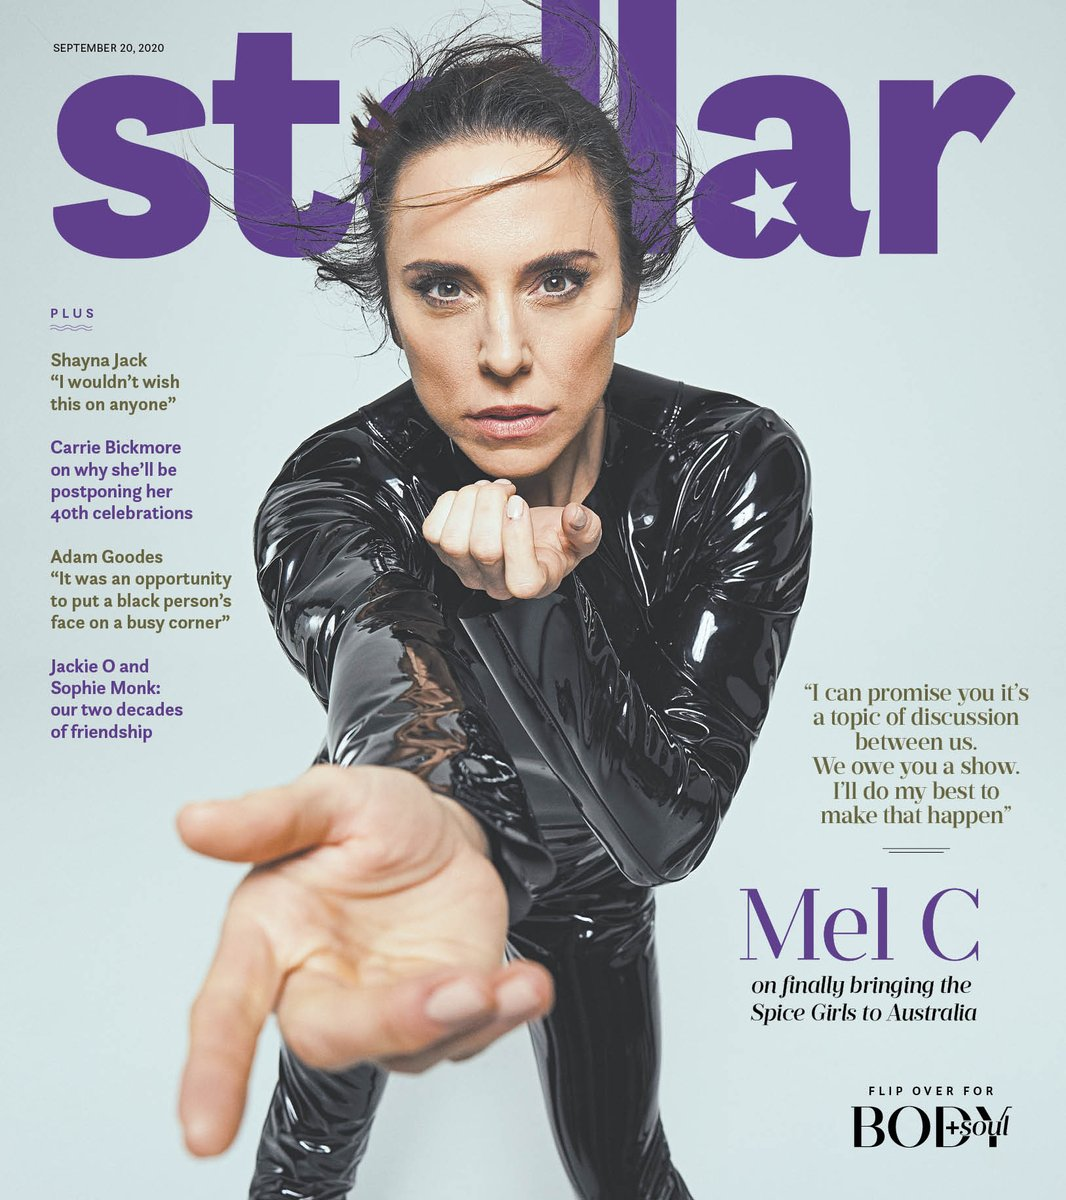 SNEAK PEEK: @MelanieCmusic stars on the cover of this Sunday's Stellar. On the flipside, you'll find Body+Soul cover star @LindyKlim. Inside The Sunday Telegraph (NSW), Sunday Herald Sun (Victoria), The Sunday Mail (Queensland), Sunday Mail (SA) and Sunday Tasmanian (Tasmania). https://t.co/QMPCPhnRlp